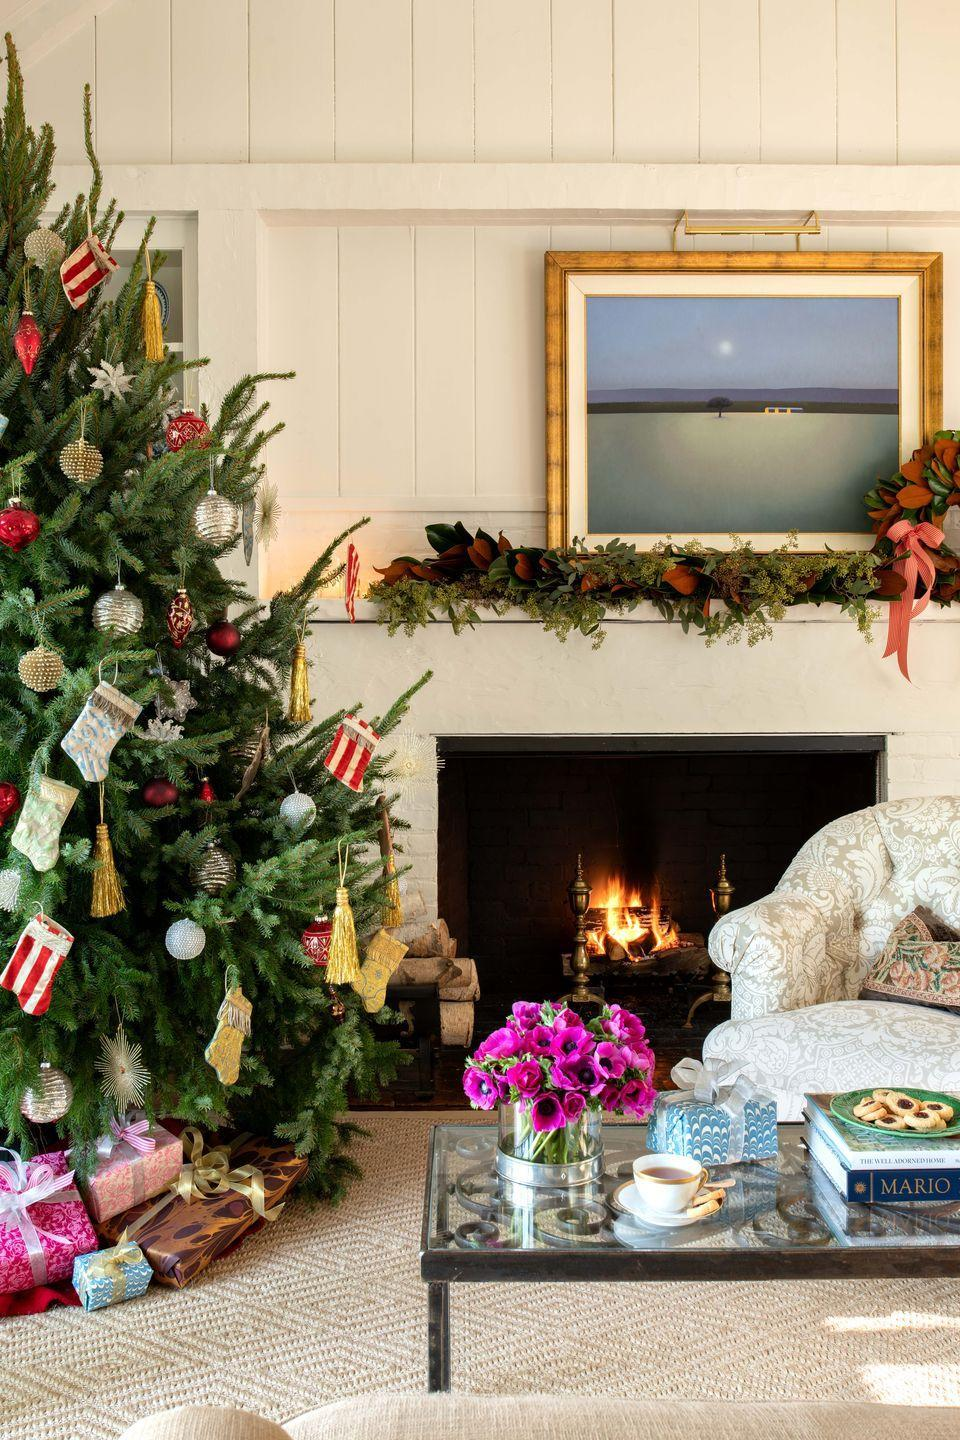 """<p>An easy way to tie your mantel and tree together? Incorporate the same color ribbon on both. The stunning coral bow made of ribbon on this mantel by <a href=""""https://www.housebeautiful.com/design-inspiration/house-tours/a34609190/elizabeth-pash-locust-valley-home-tour/"""" rel=""""nofollow noopener"""" target=""""_blank"""" data-ylk=""""slk:Elizabeth Pash"""" class=""""link rapid-noclick-resp"""">Elizabeth Pash</a> would look even better woven around the tree near it.</p>"""